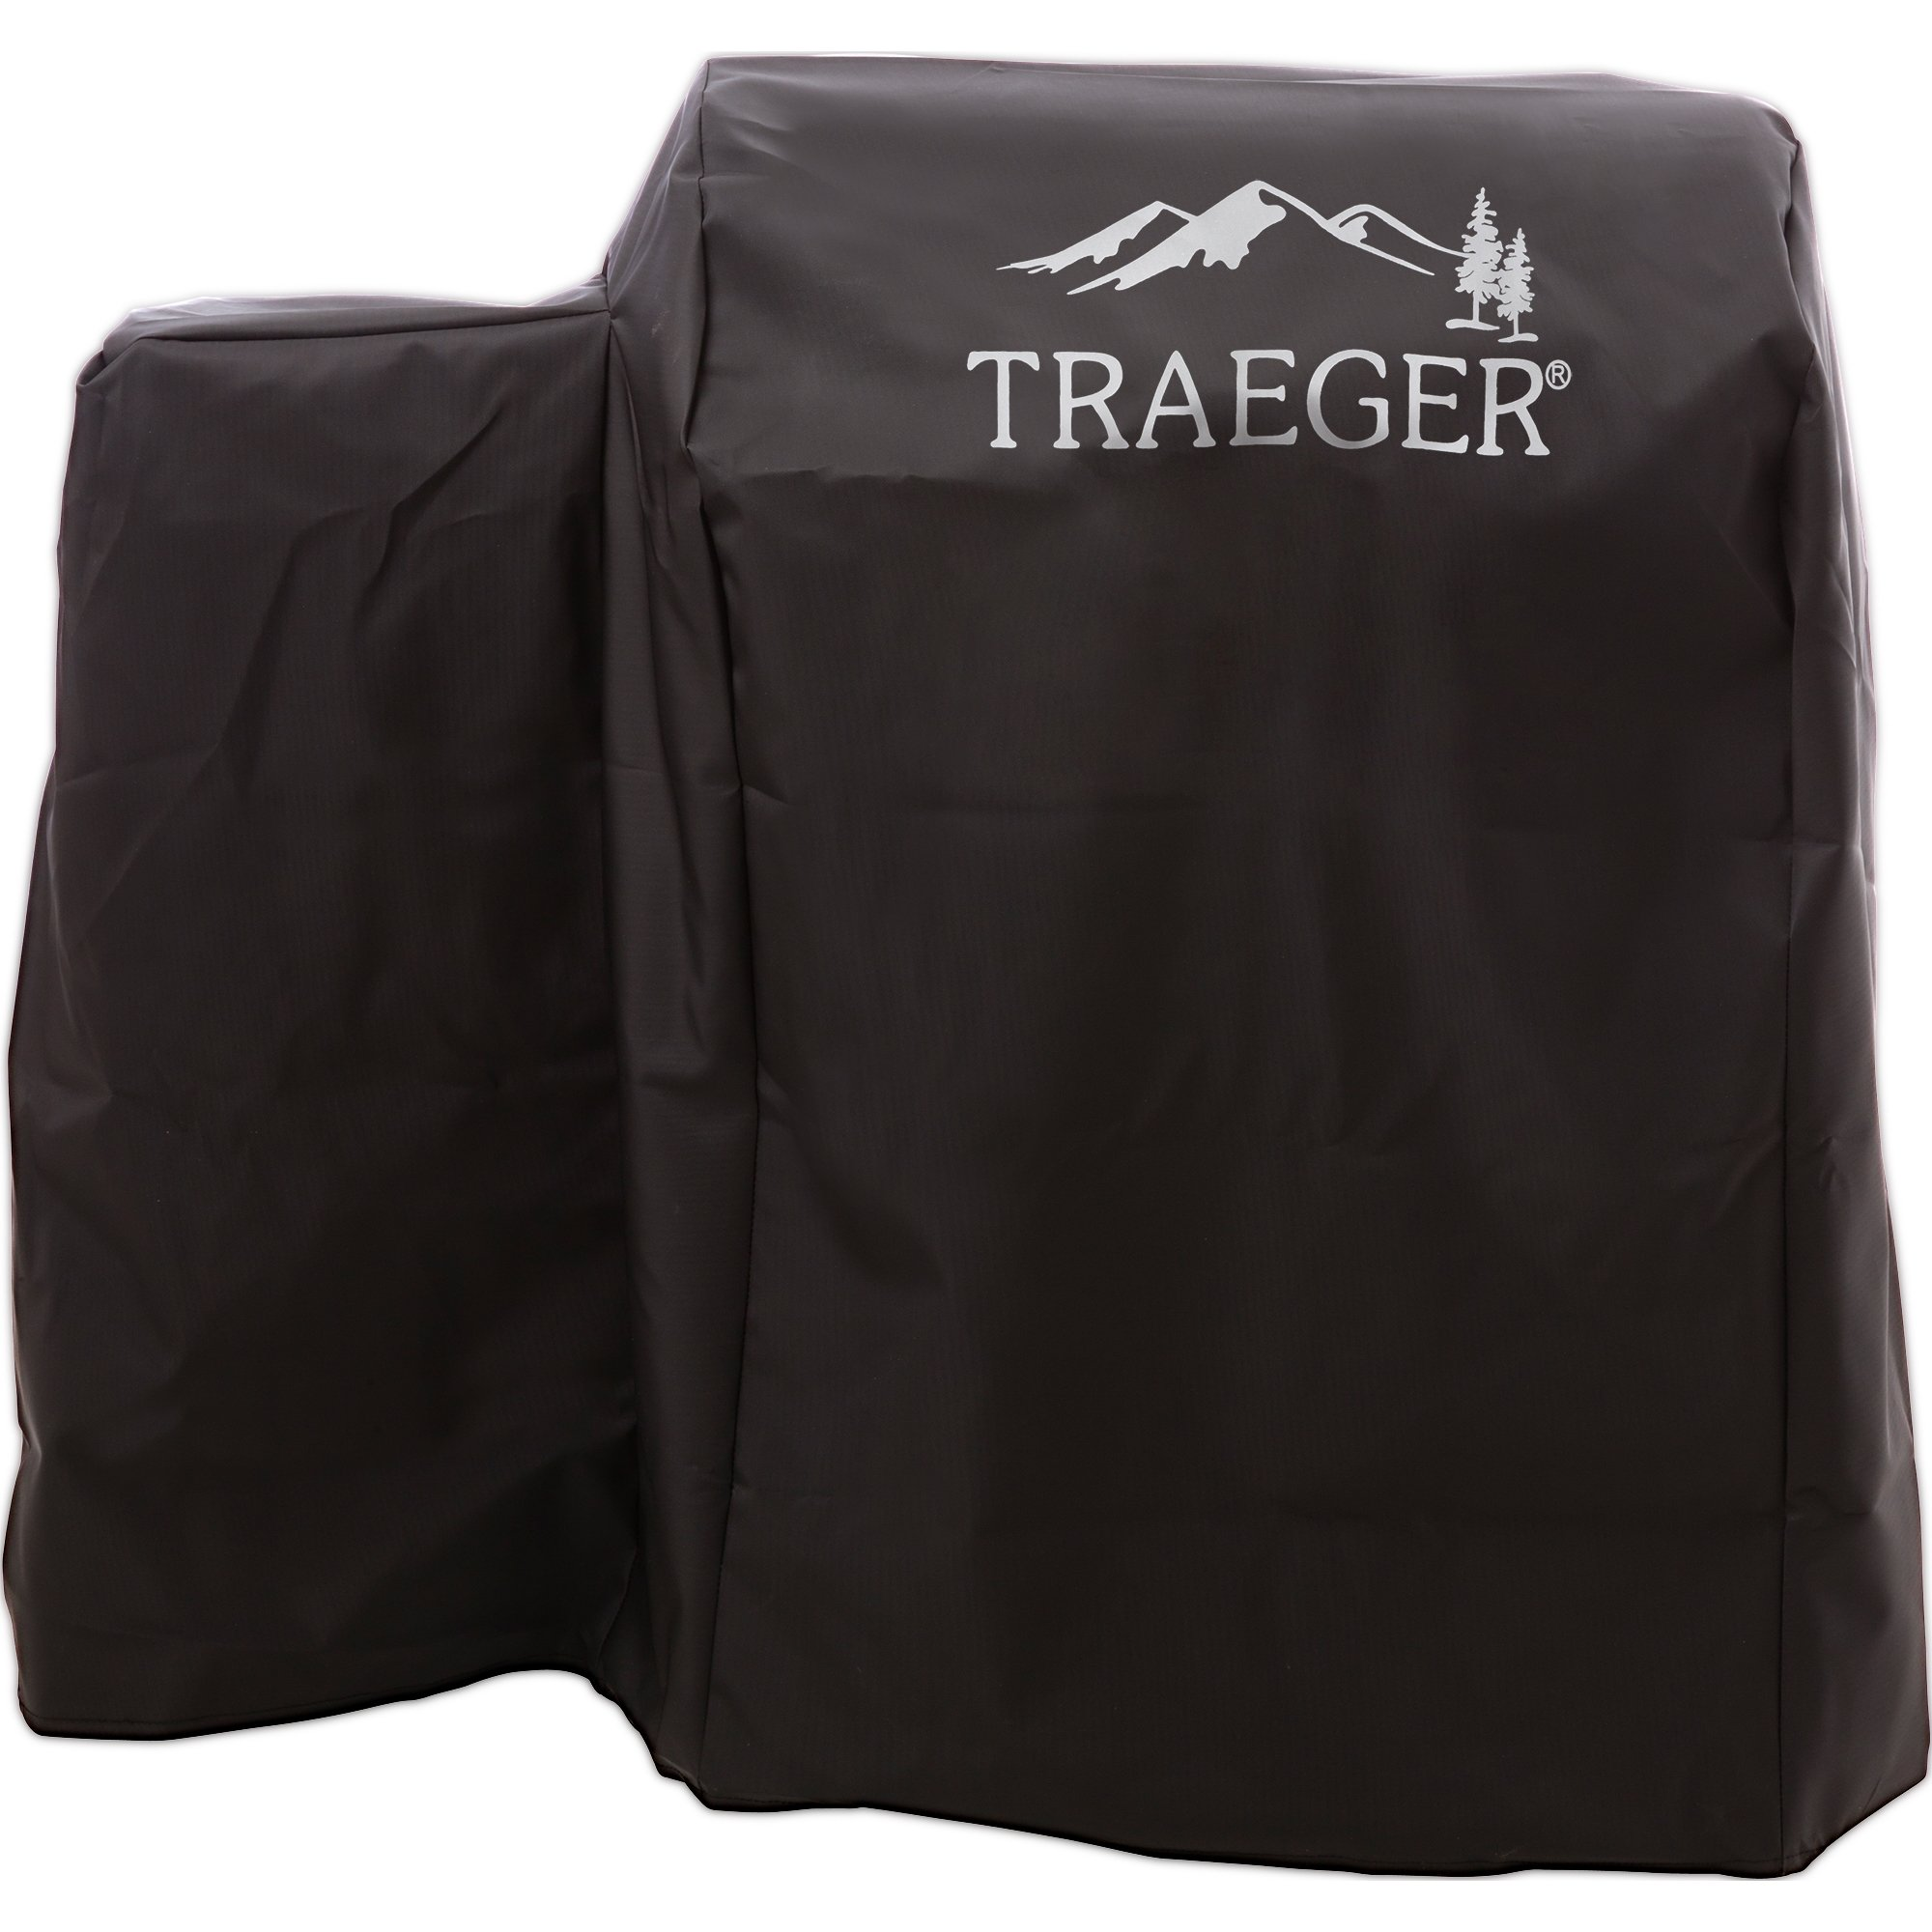 Traeger BAC374 20 Series Full Length Grill Cover by Traeger